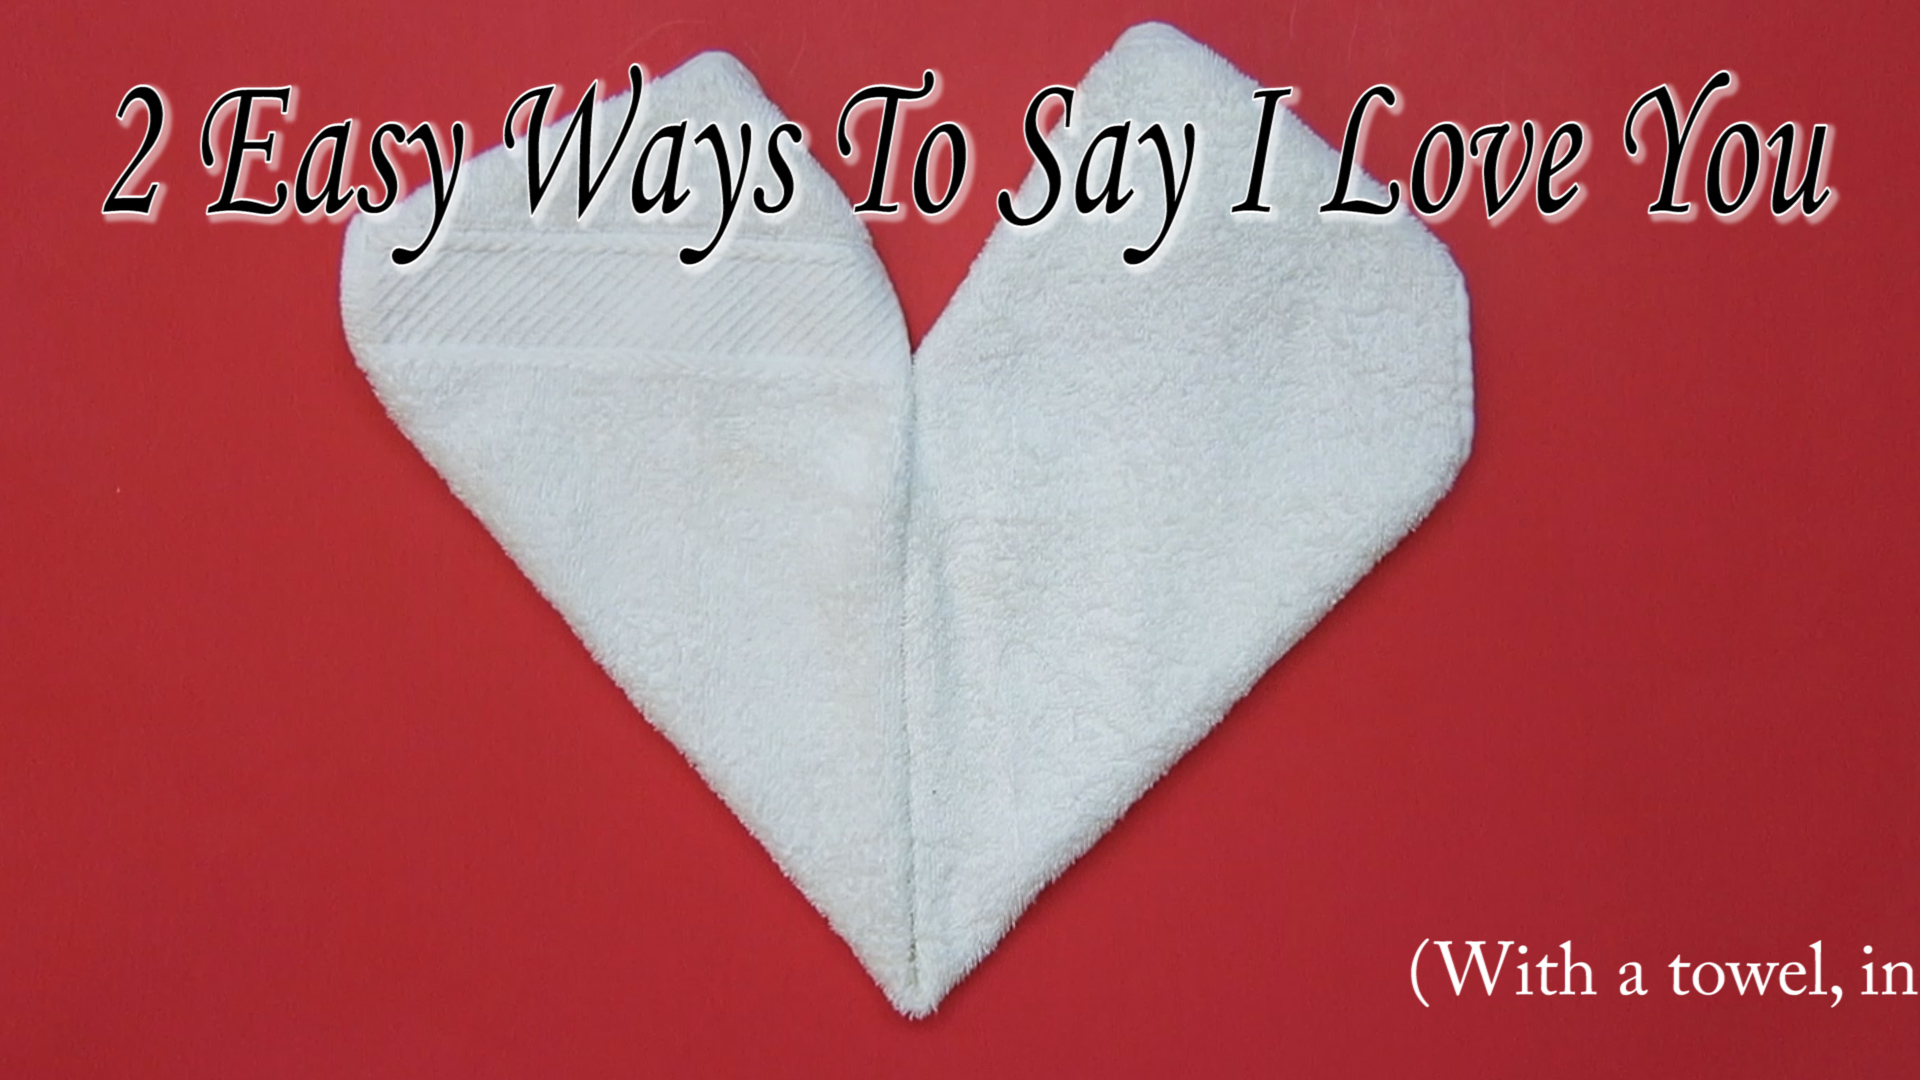 Heart and Lips Towel Folding 2 Quick Ways Say I Love You in under a minute.jpg